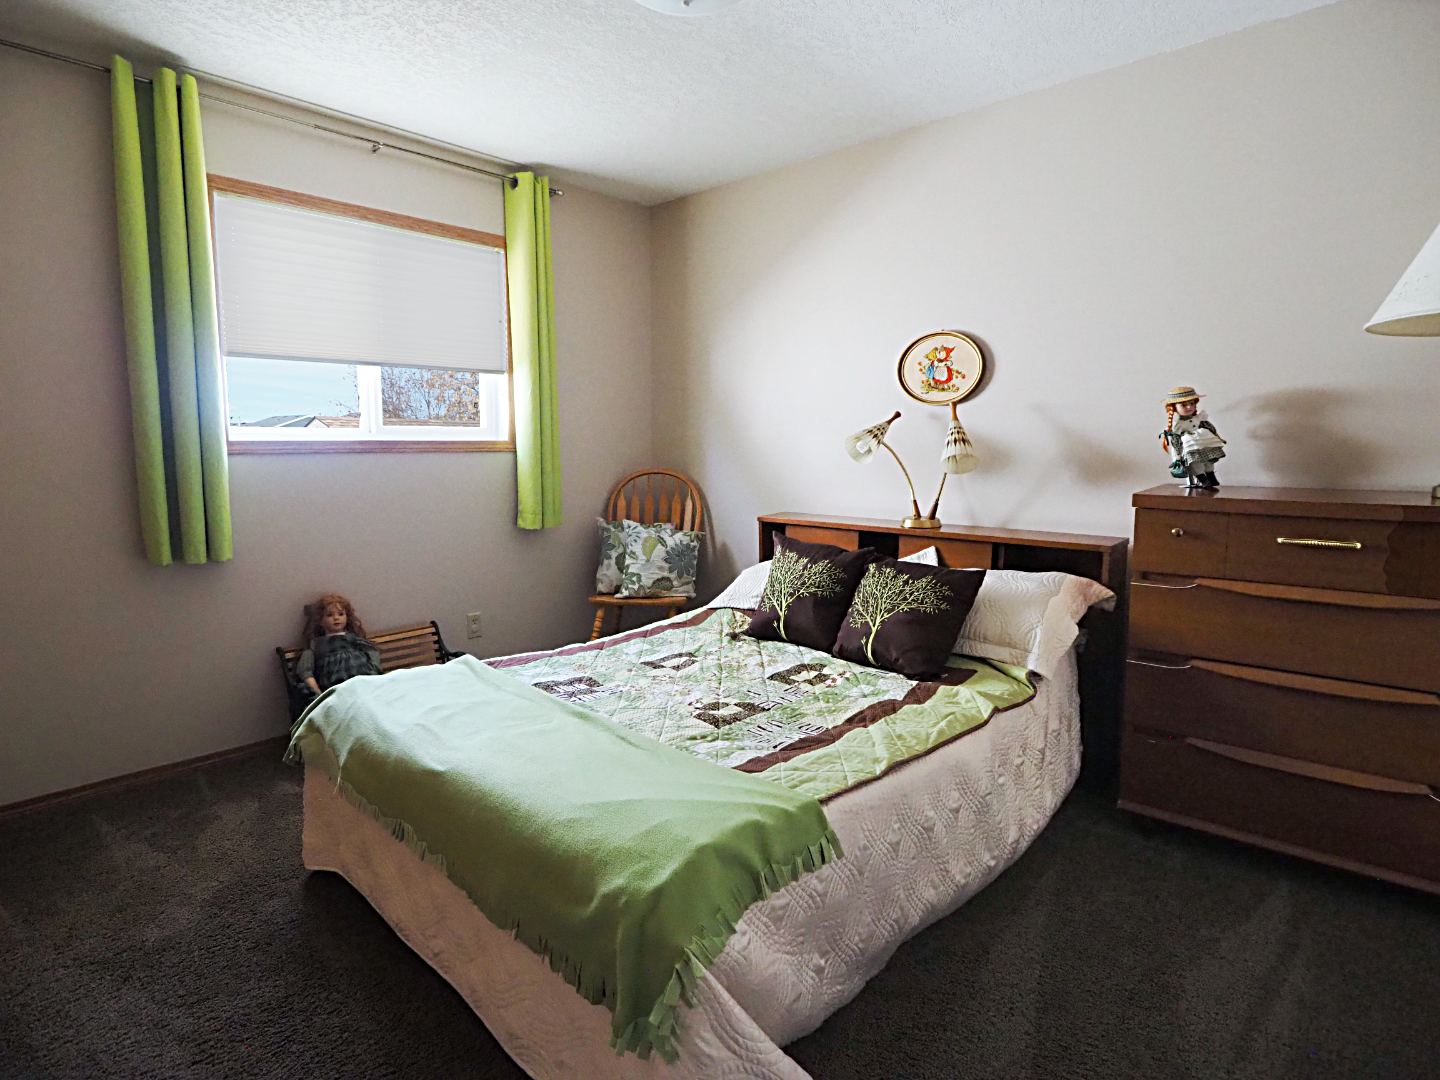 66 Excell Street bedroom